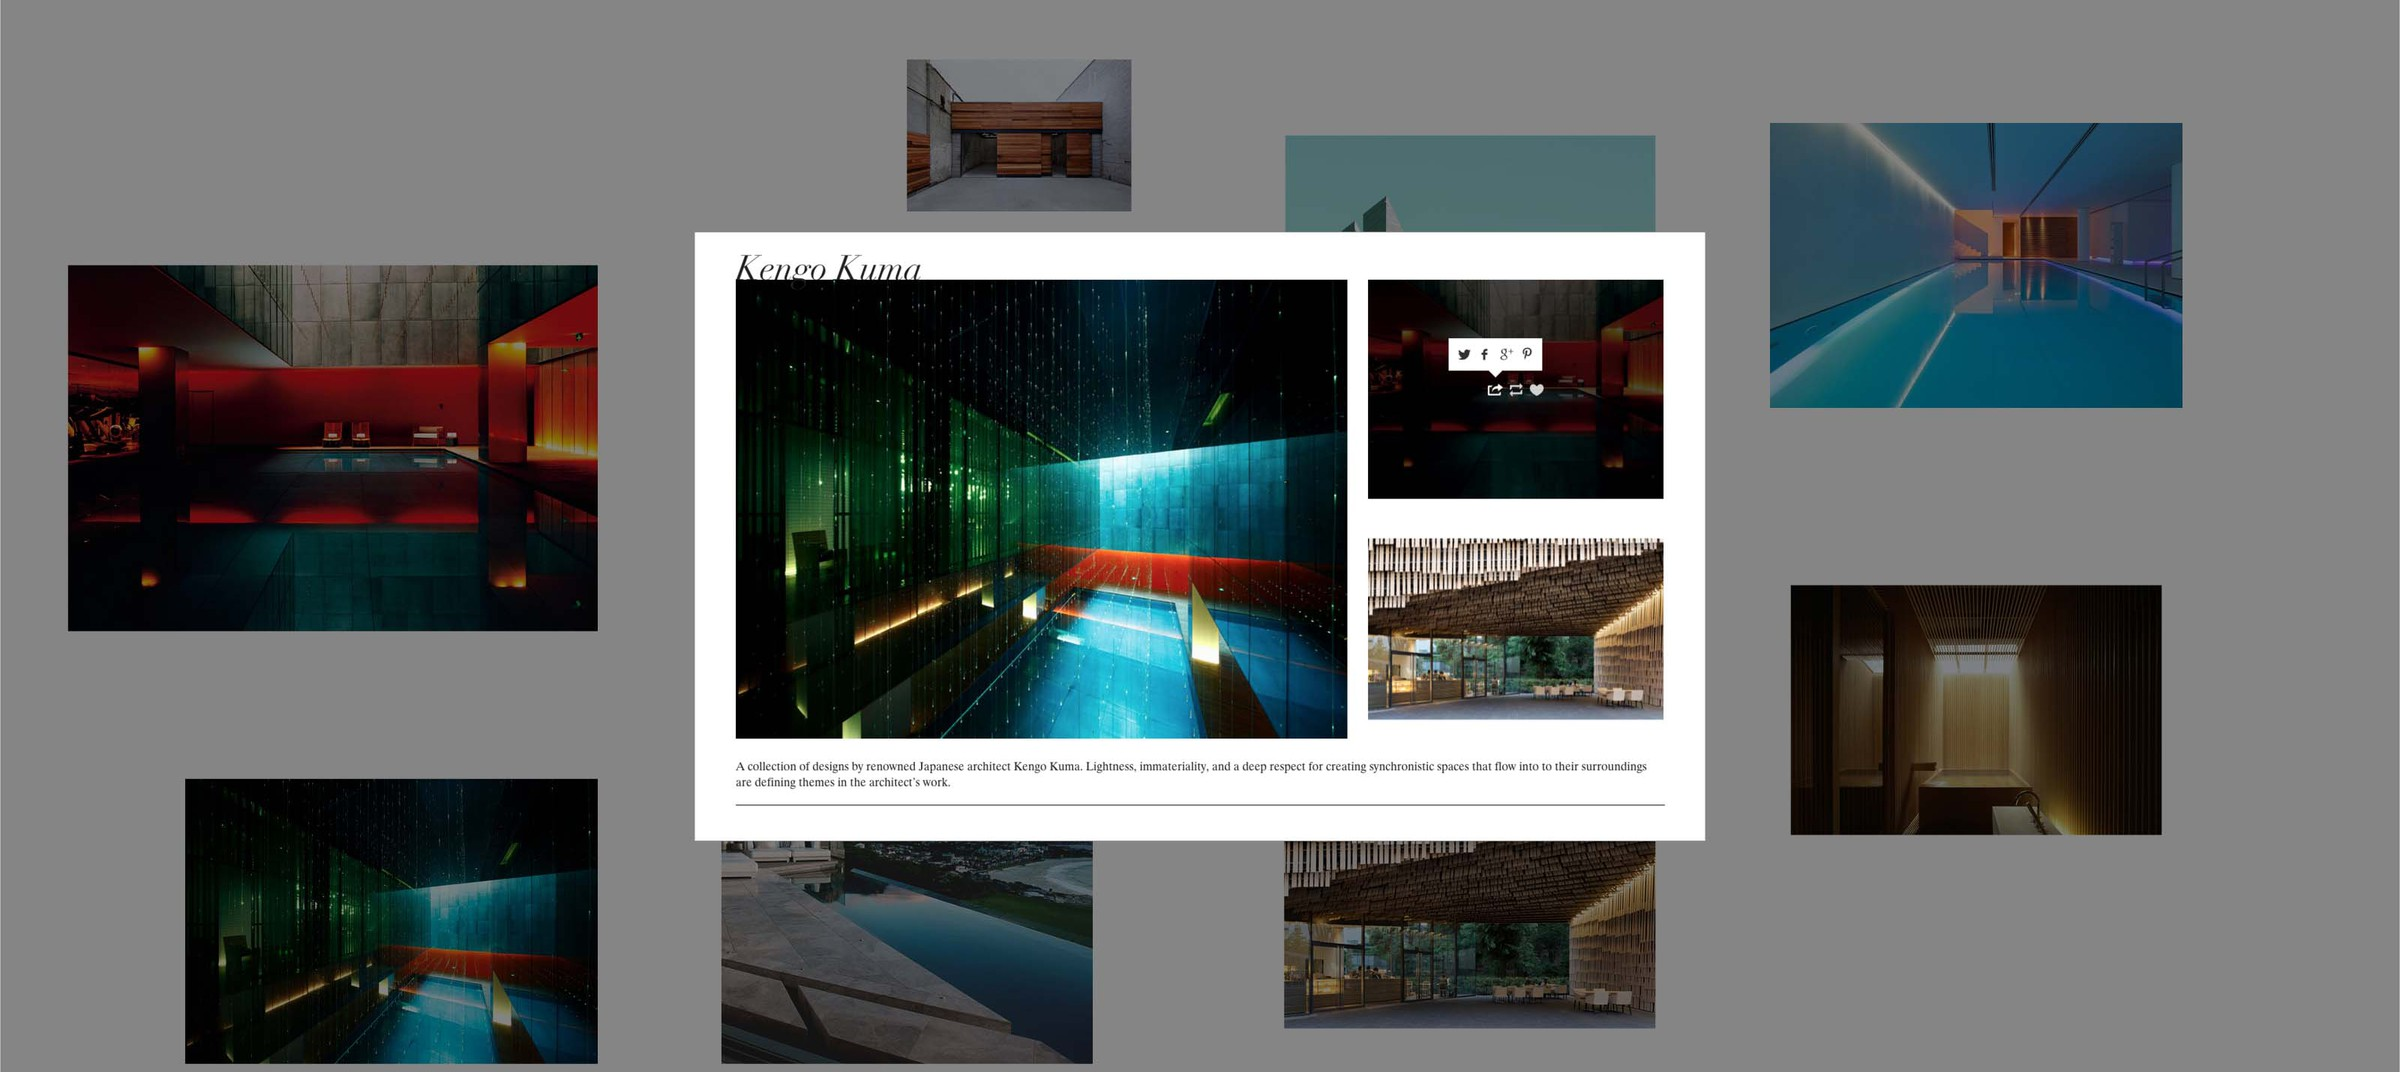 Spotlight of Kengo Kuma on new platform on Tumblr created for Douglas Elliman and Knight Frank by DTE Studio.